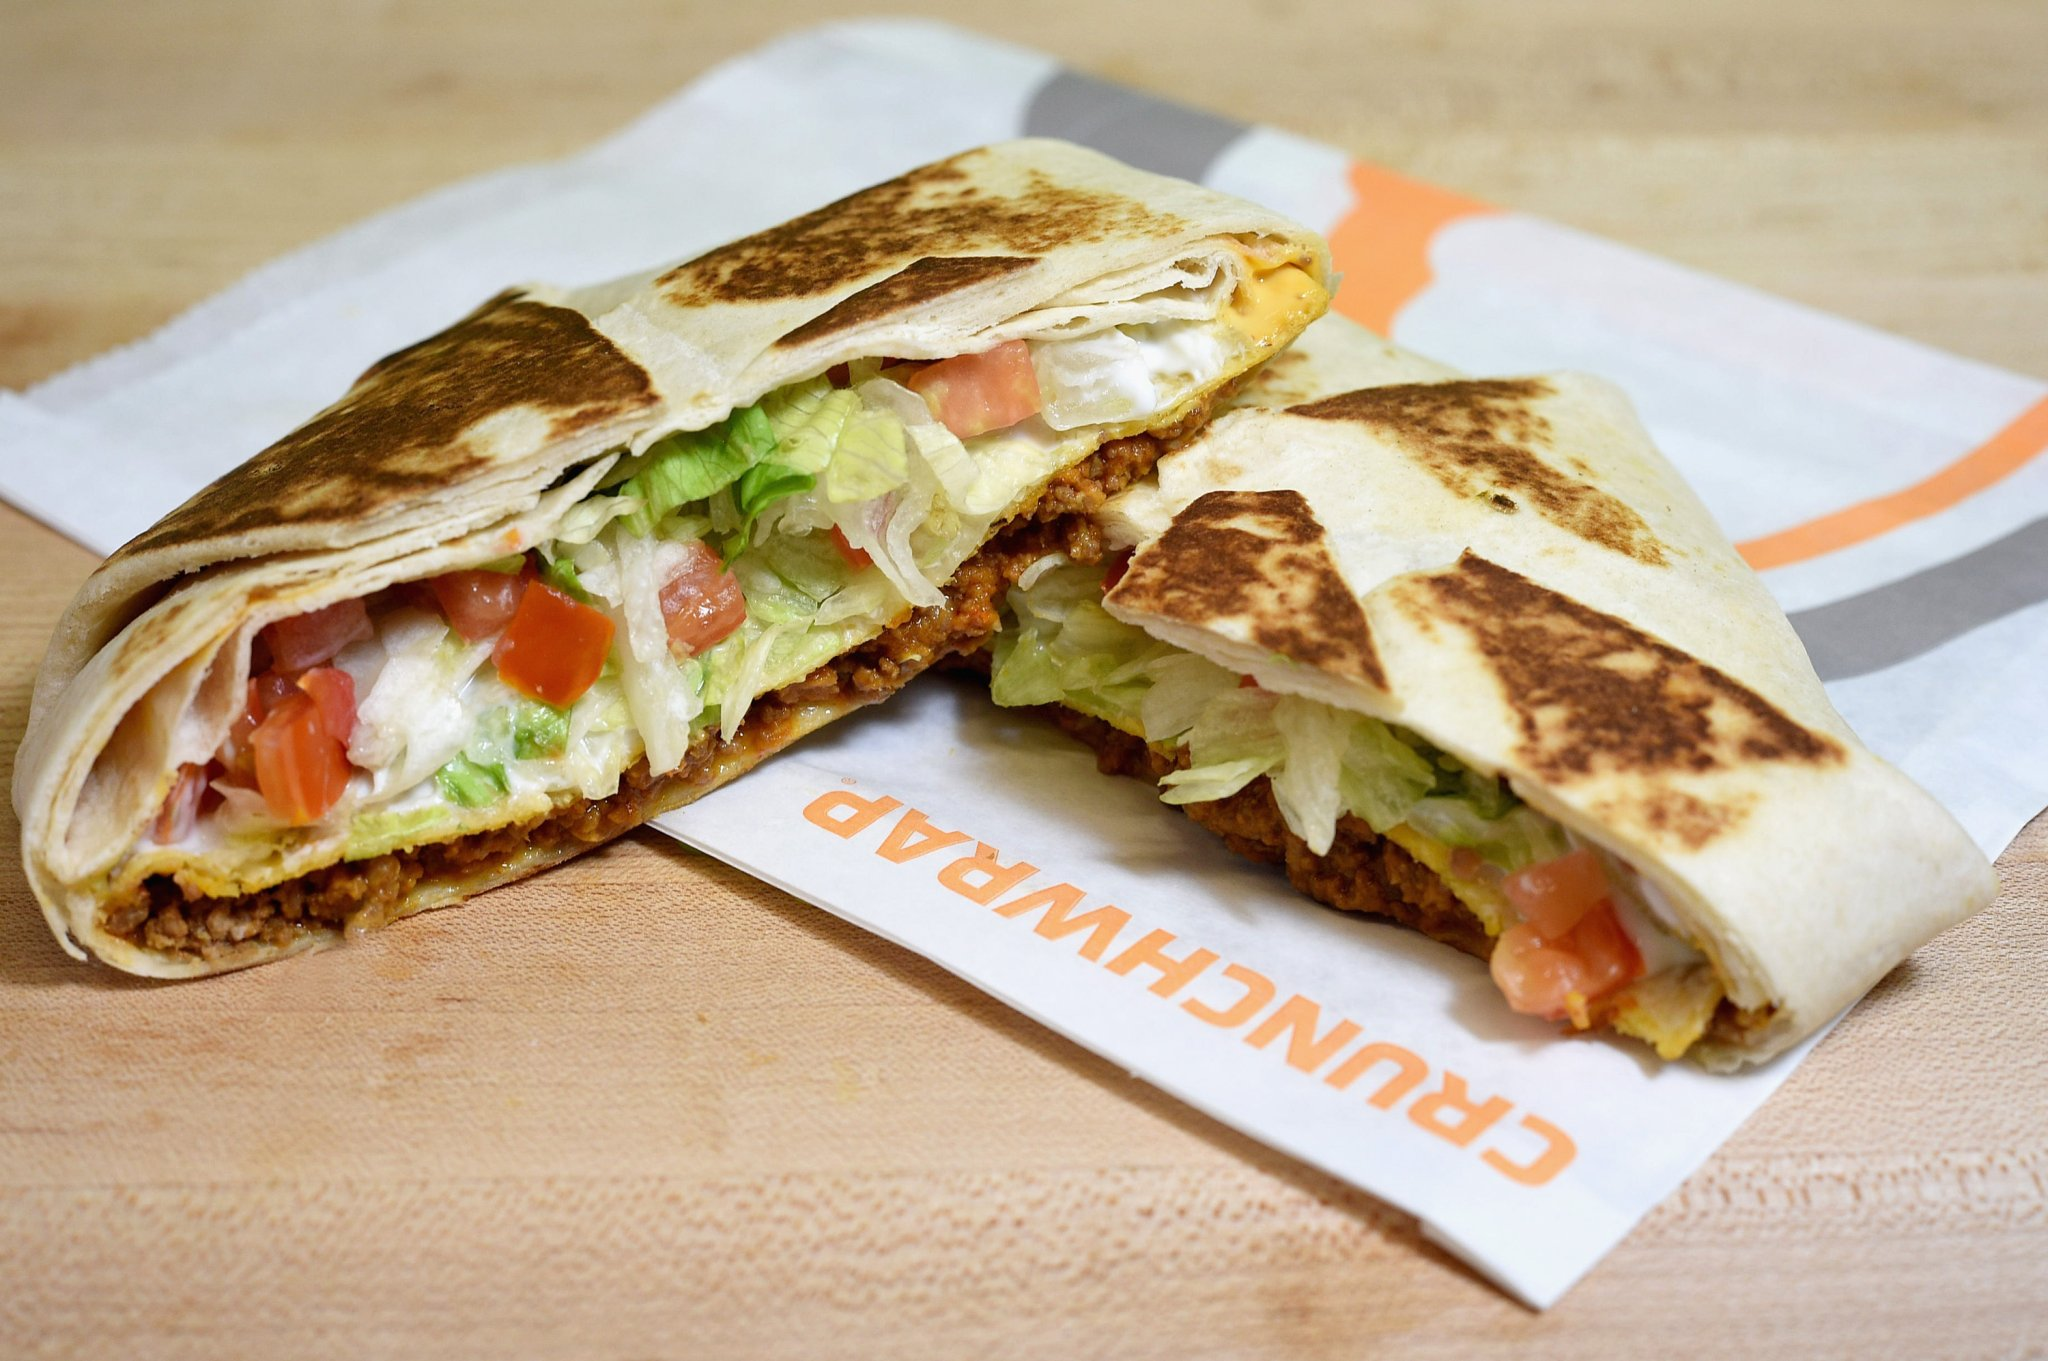 Keto at Taco Bell: 10 Nutritionist-Approved Options